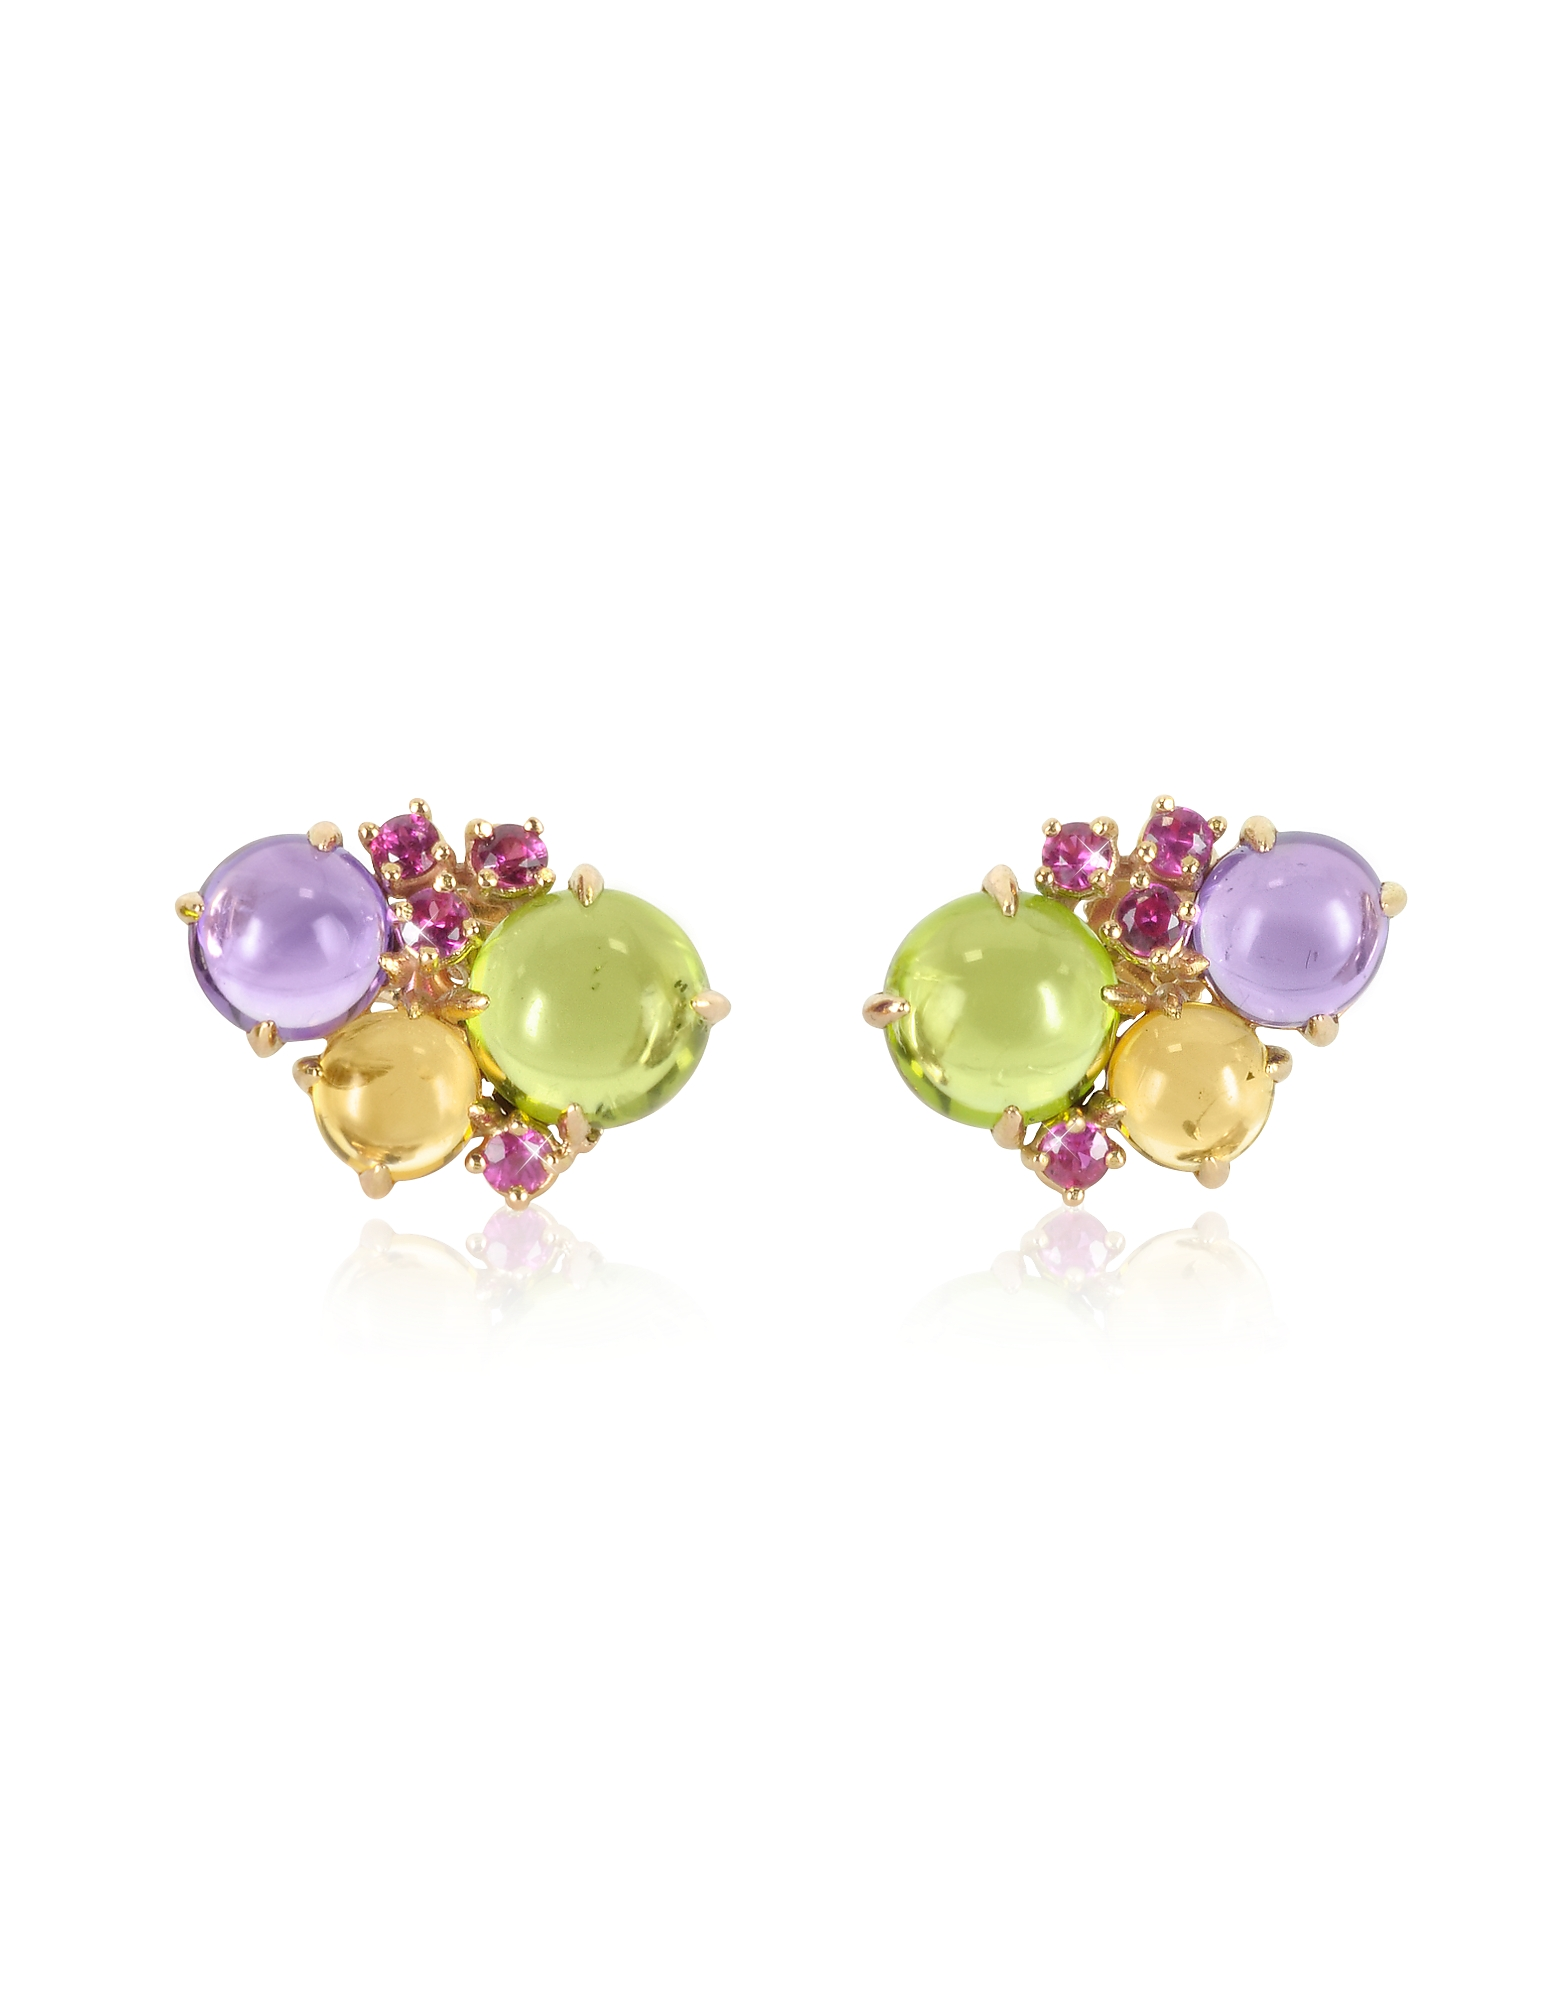 Mia & Beverly Earrings, Gemstones 18K Rose Gold Earrings